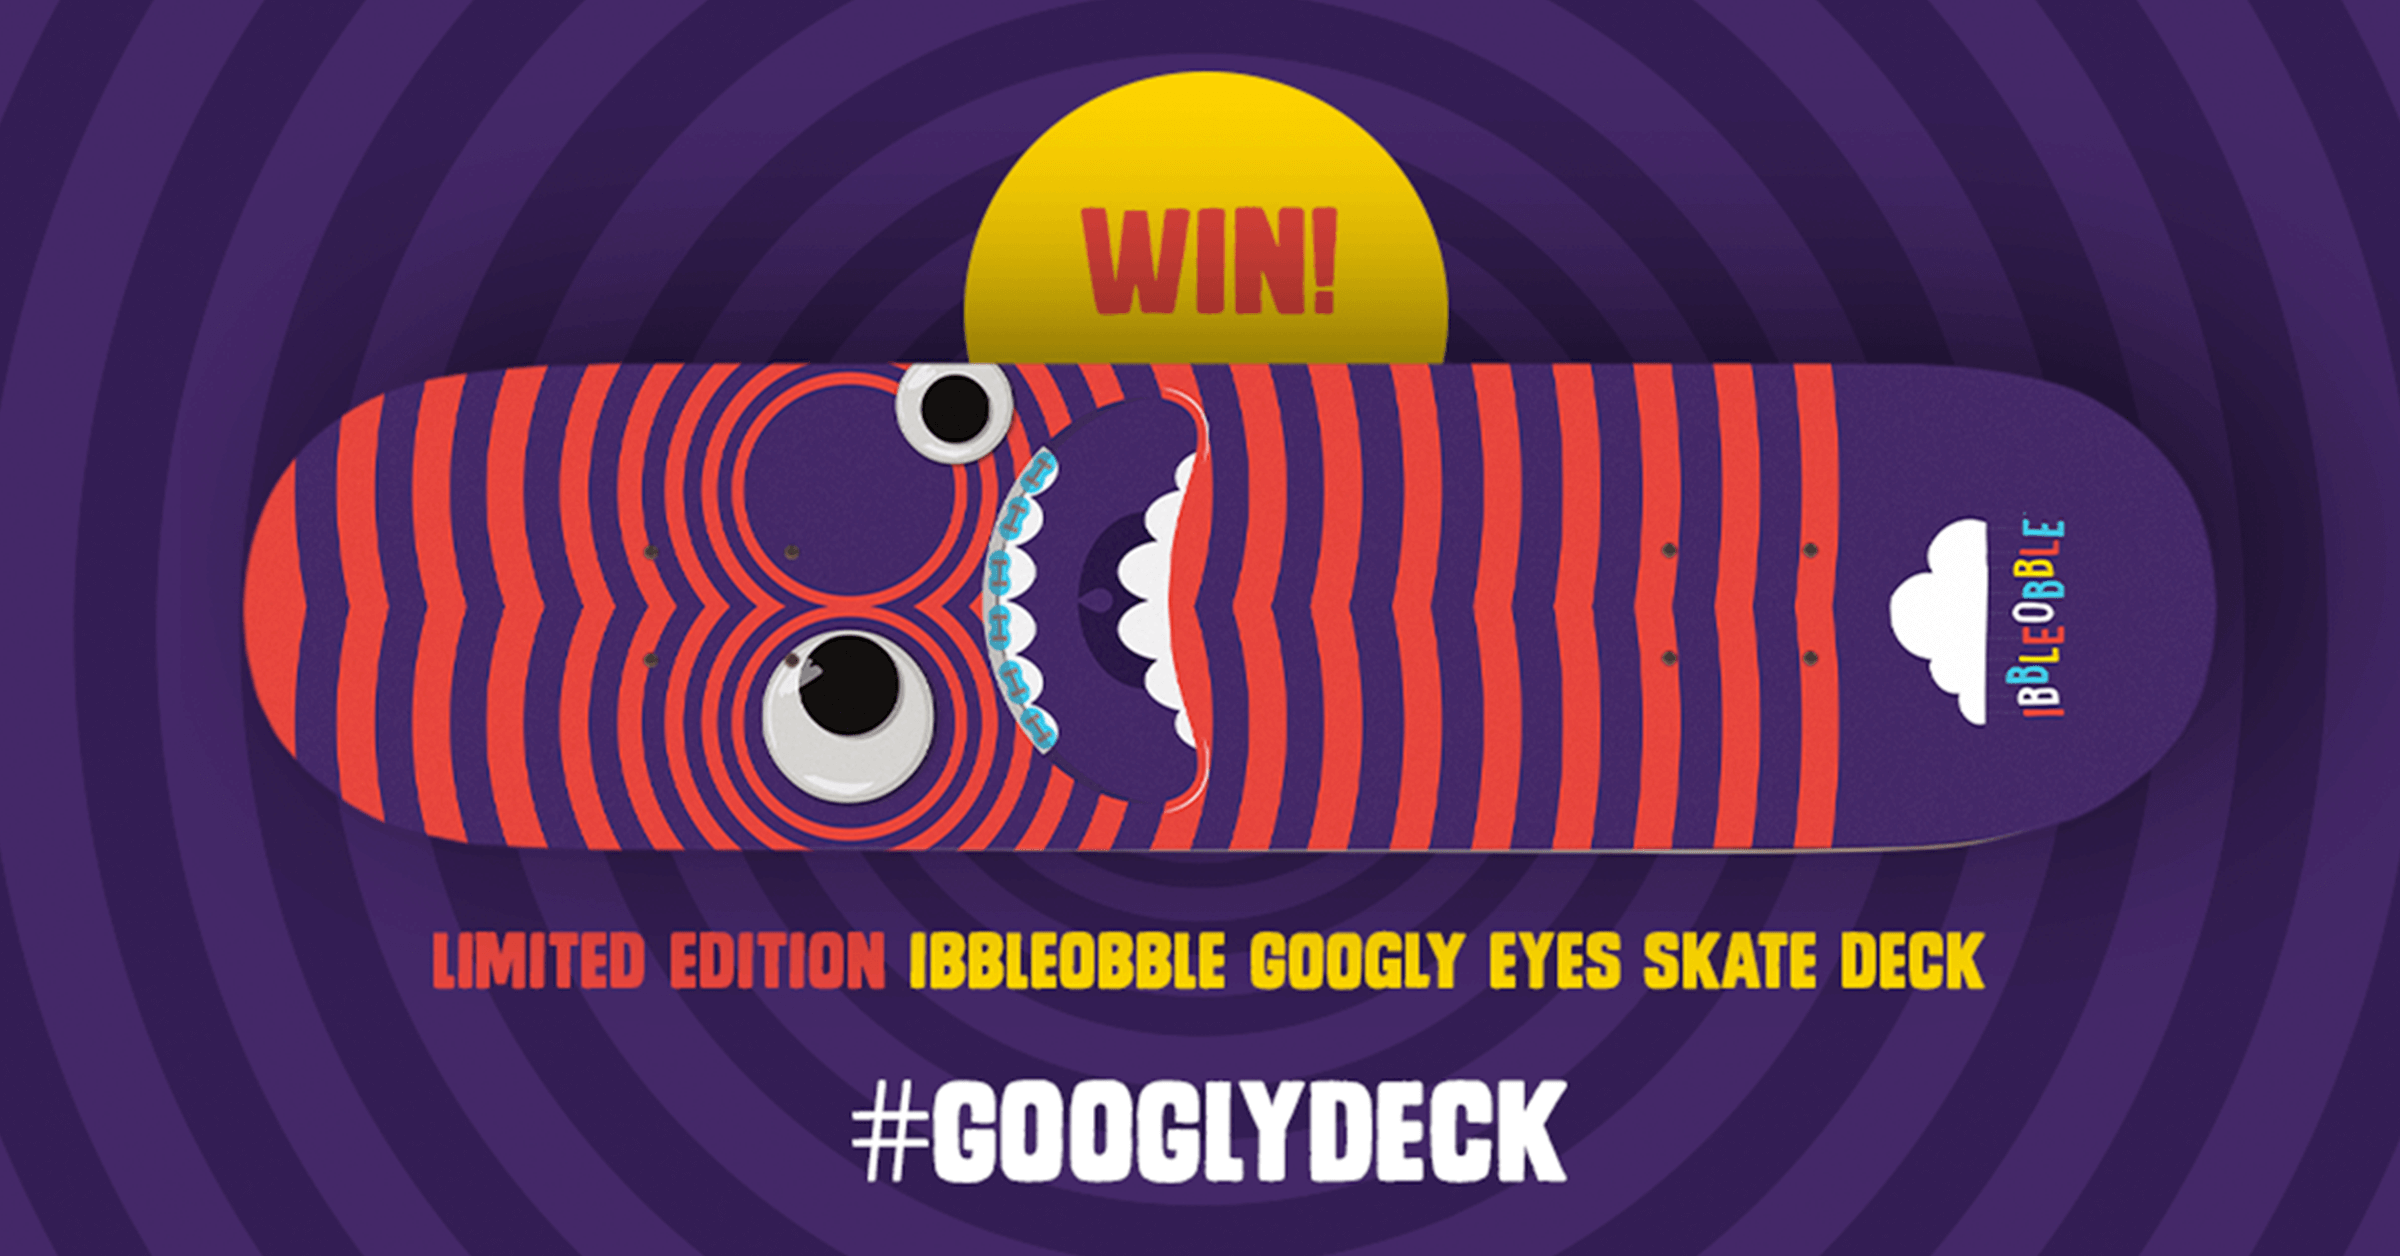 Googly Eyes Skate Deck Giveaway